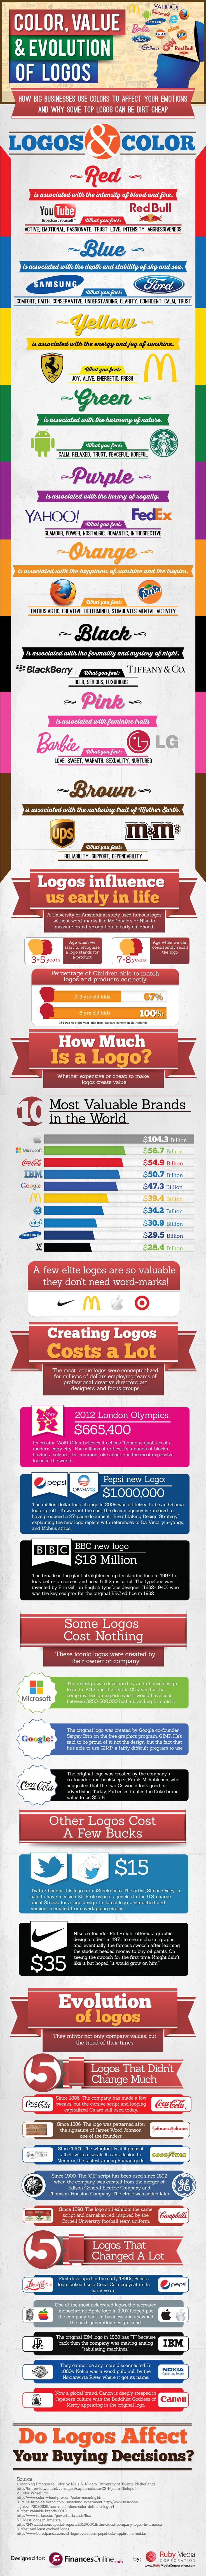 How Big Businesses Like Ford or McDonald's Use The Power of Their Logos // some really hilarious facts about logo design